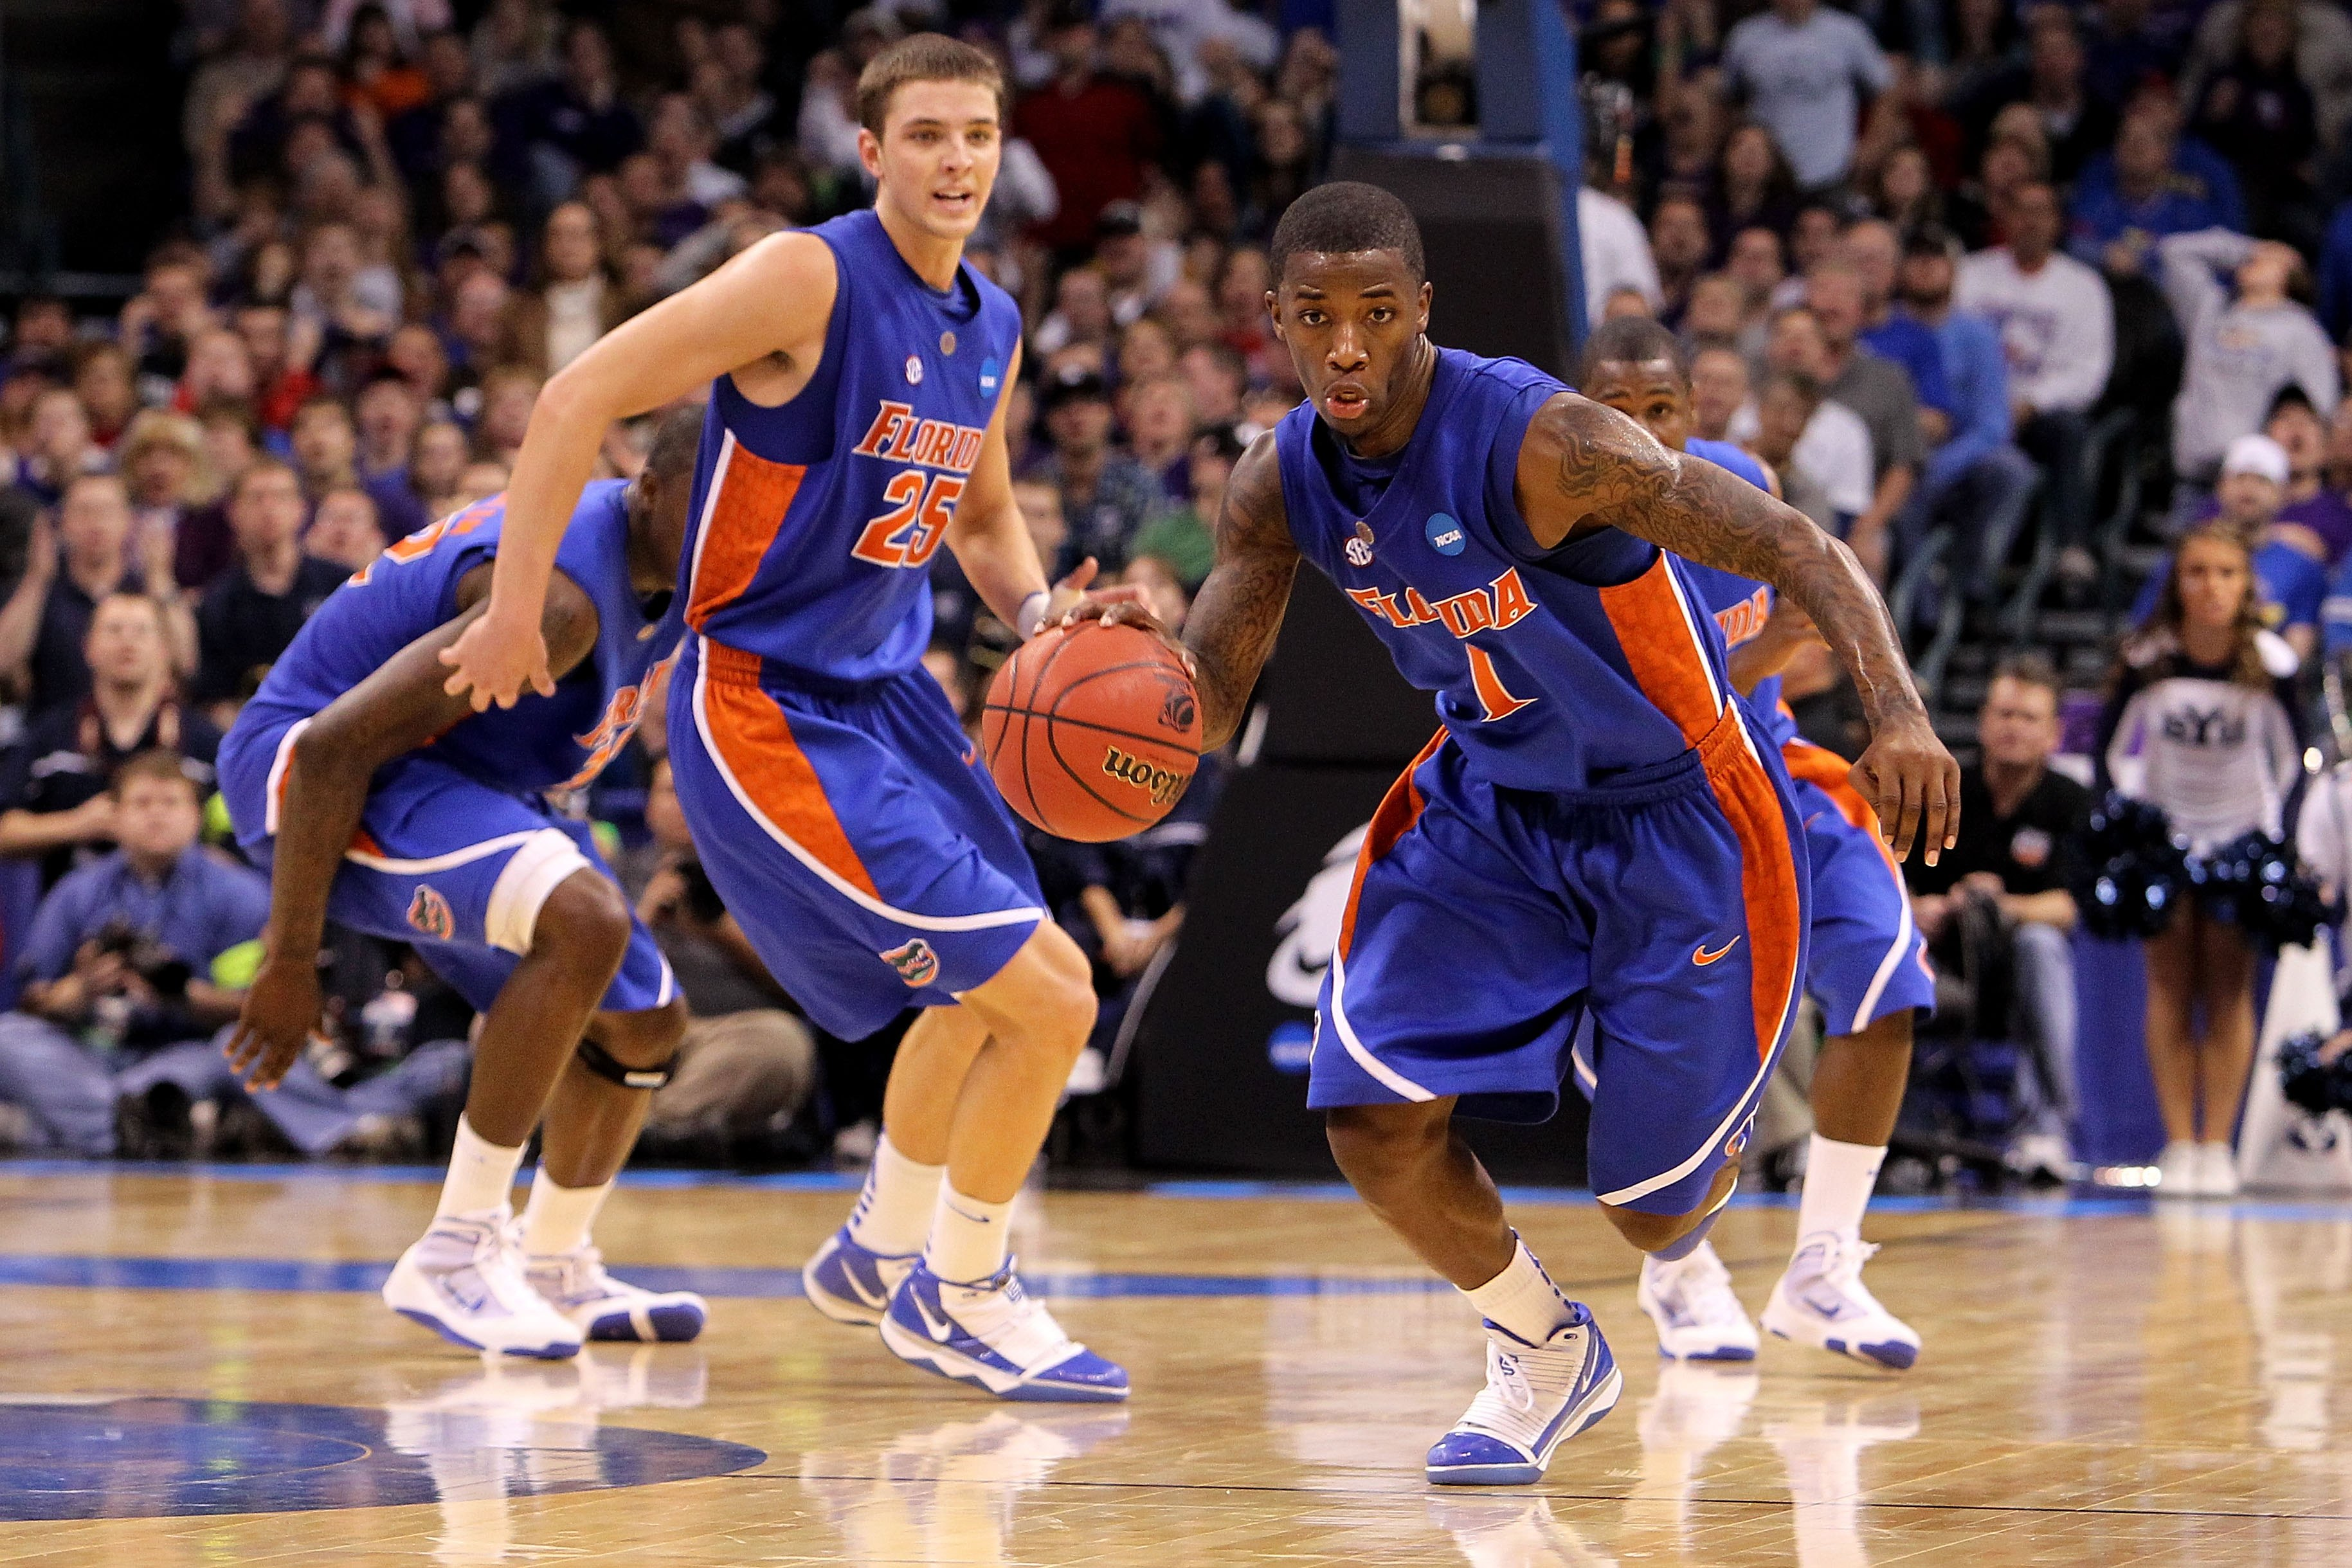 OKLAHOMA CITY - MARCH 18:  Kenny Boynton #1 of  the Florida Gators pushes the ball up court in overtime against the BYU Cougars during the first round of the 2010 NCAA men�s basketball tournament at Ford Center on March 18, 2010 in Oklahoma City, Oklahoma